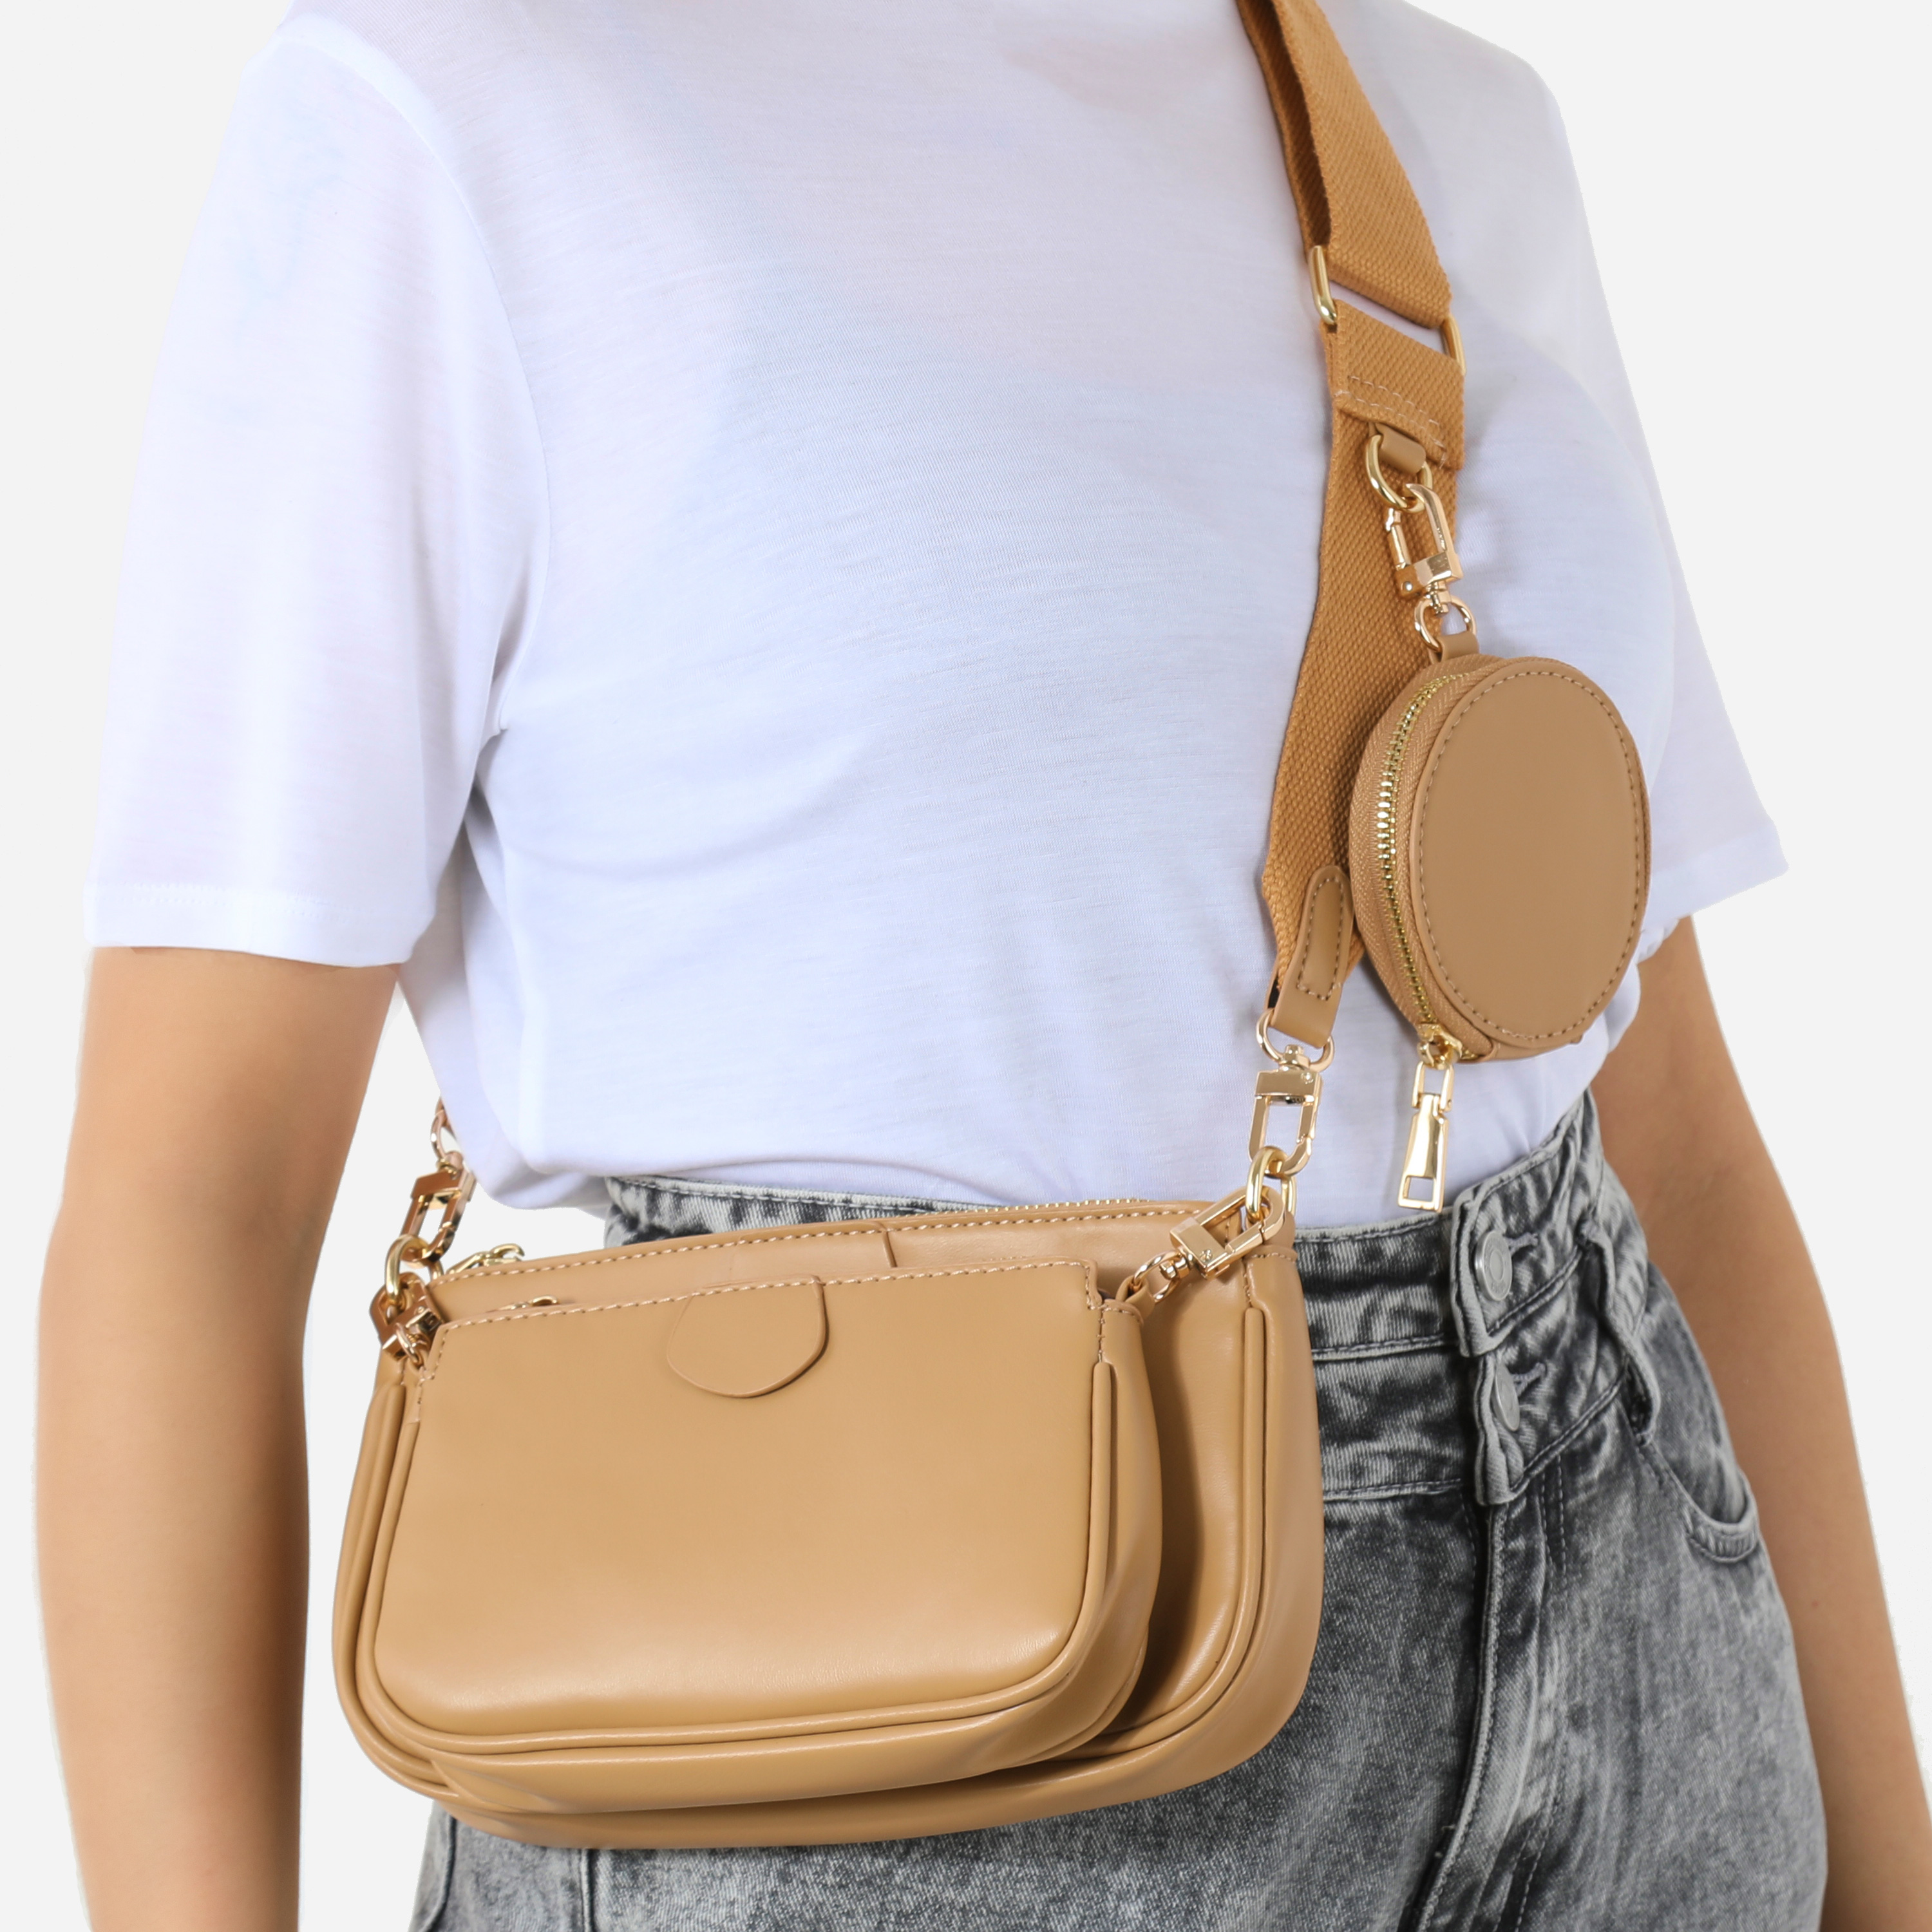 Chain & Purse Detail Cross Body Bag In Nude Faux Leather